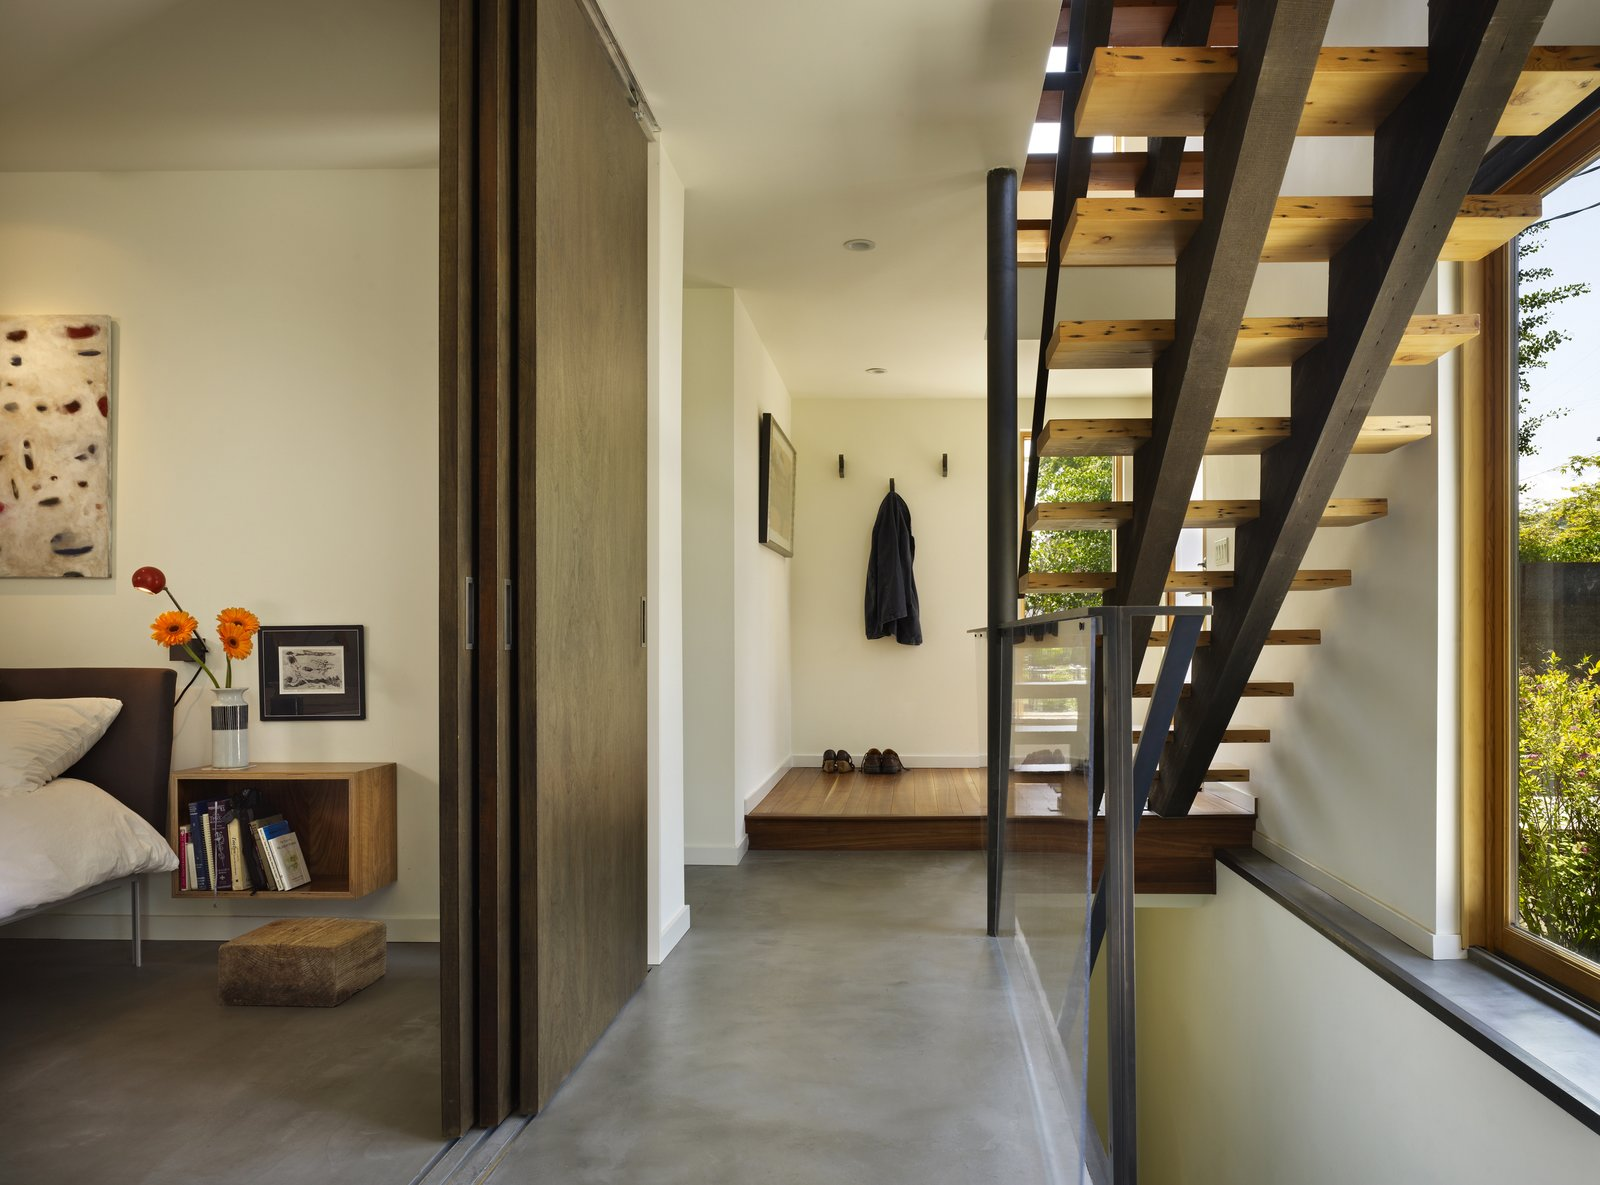 Bedroom & Entry Hall  Lobster Boat House by chadbourne + doss architects